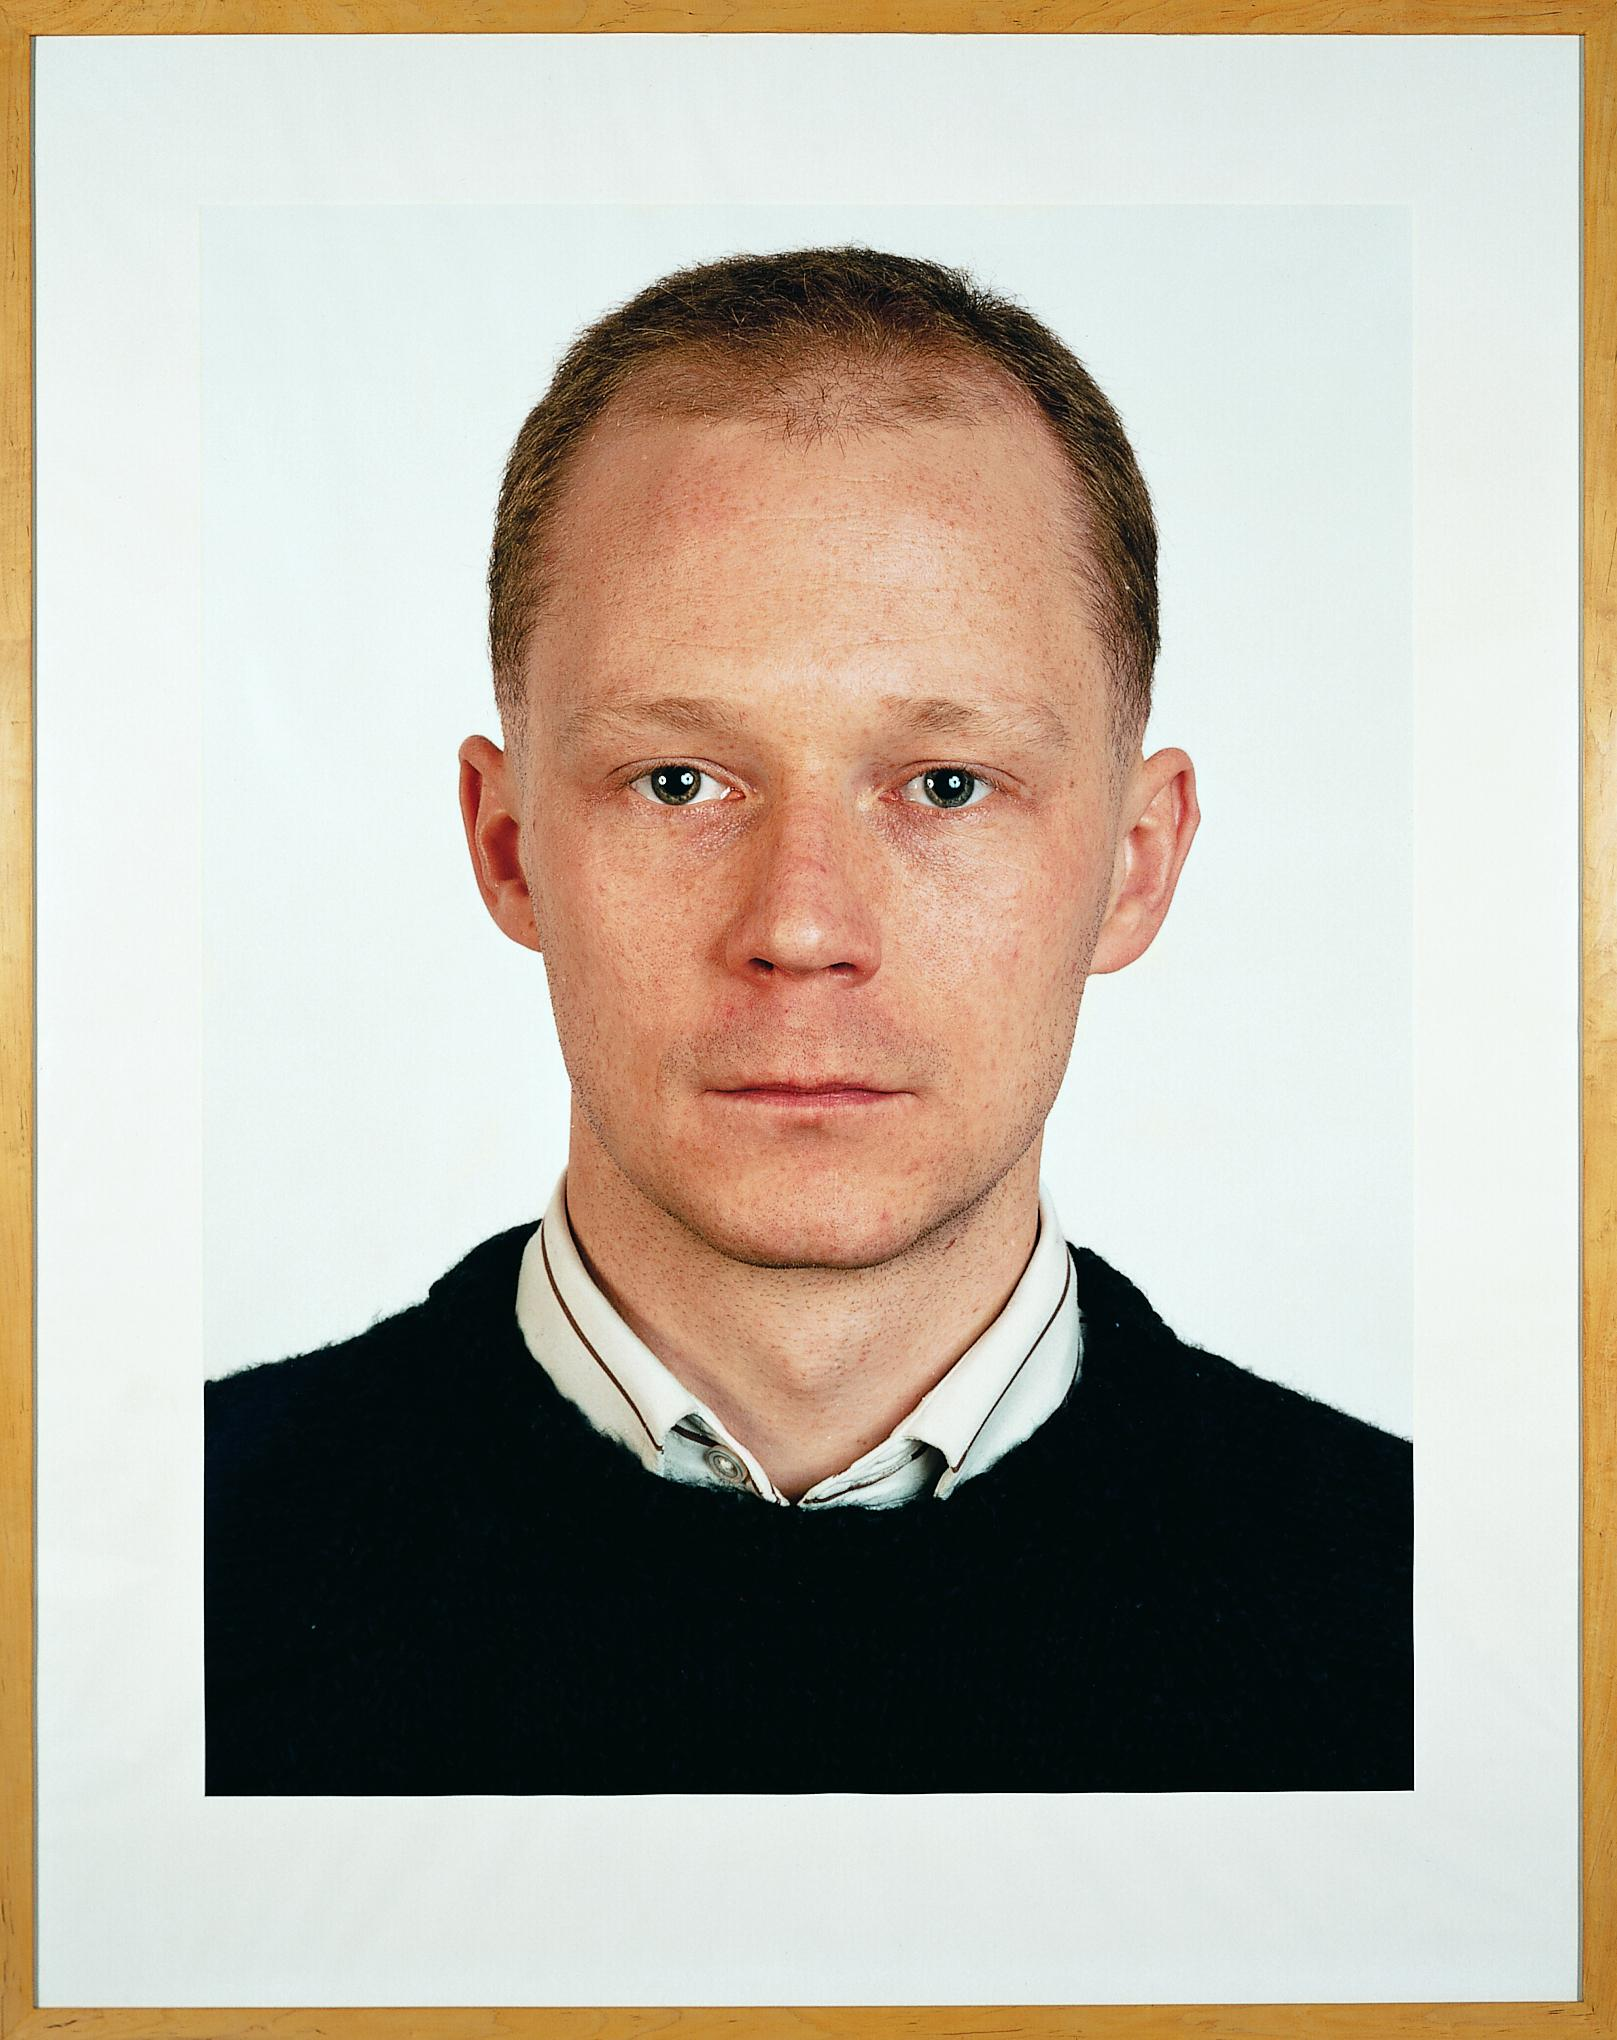 A frontal portrait features a person looking just off-camera, wearing a collared shirt under a sweater.